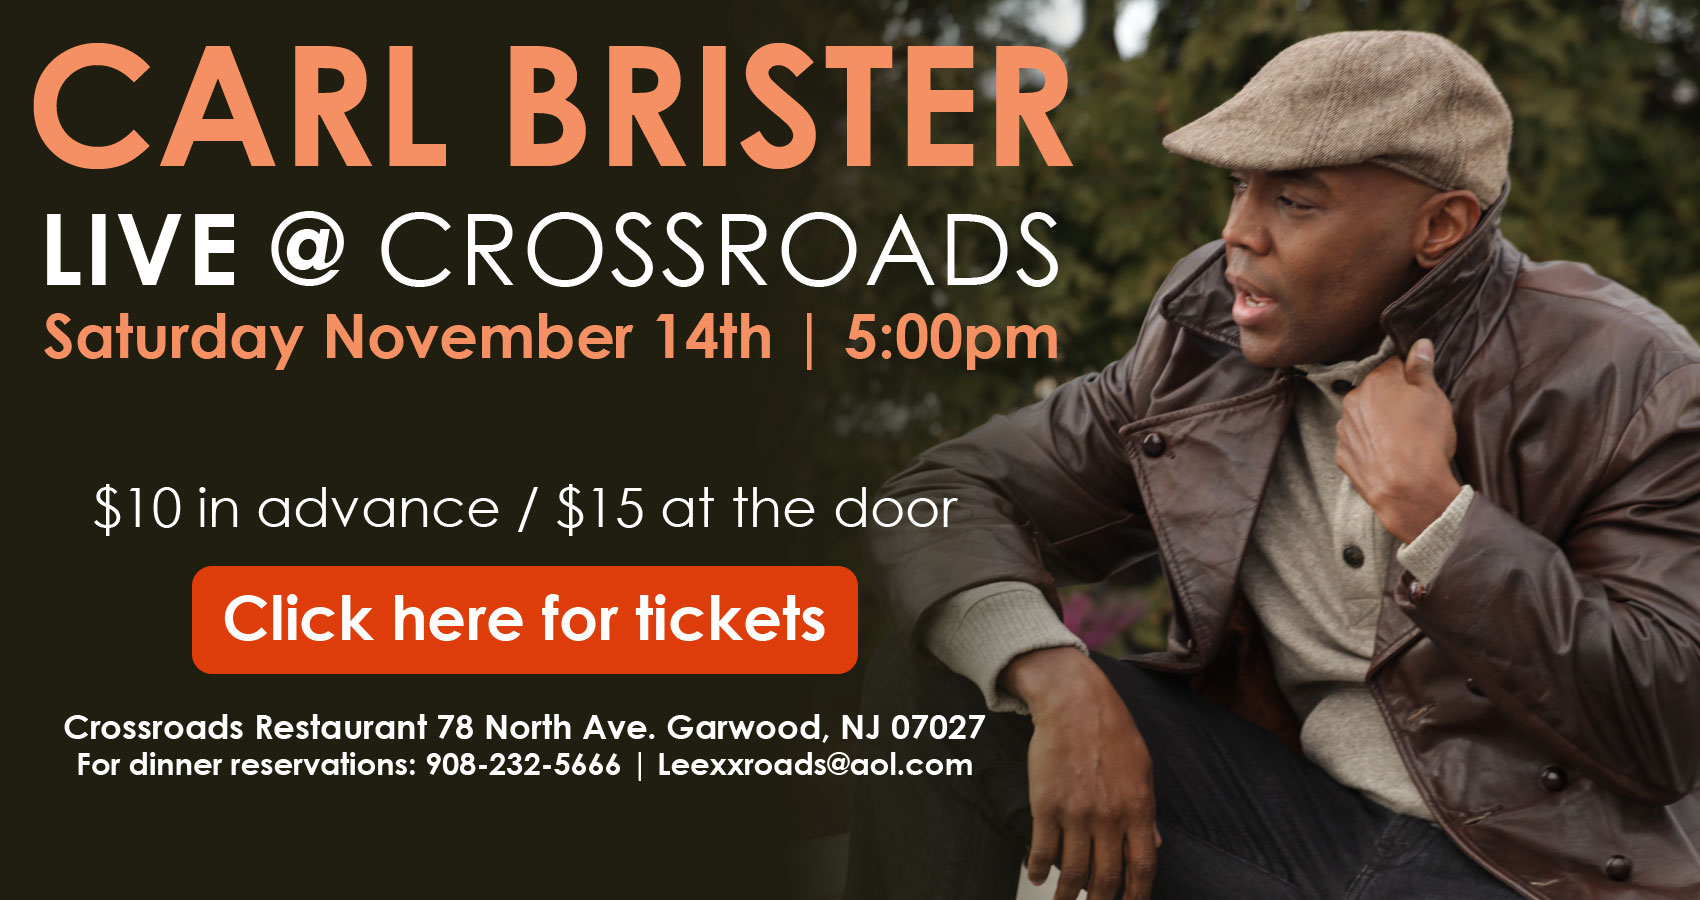 Carl Brister Live at Crossroads Restaurant in Garwood, NJ - Sat. November 14th at 5pm. Tickets $10 in advance, $15 at the door.